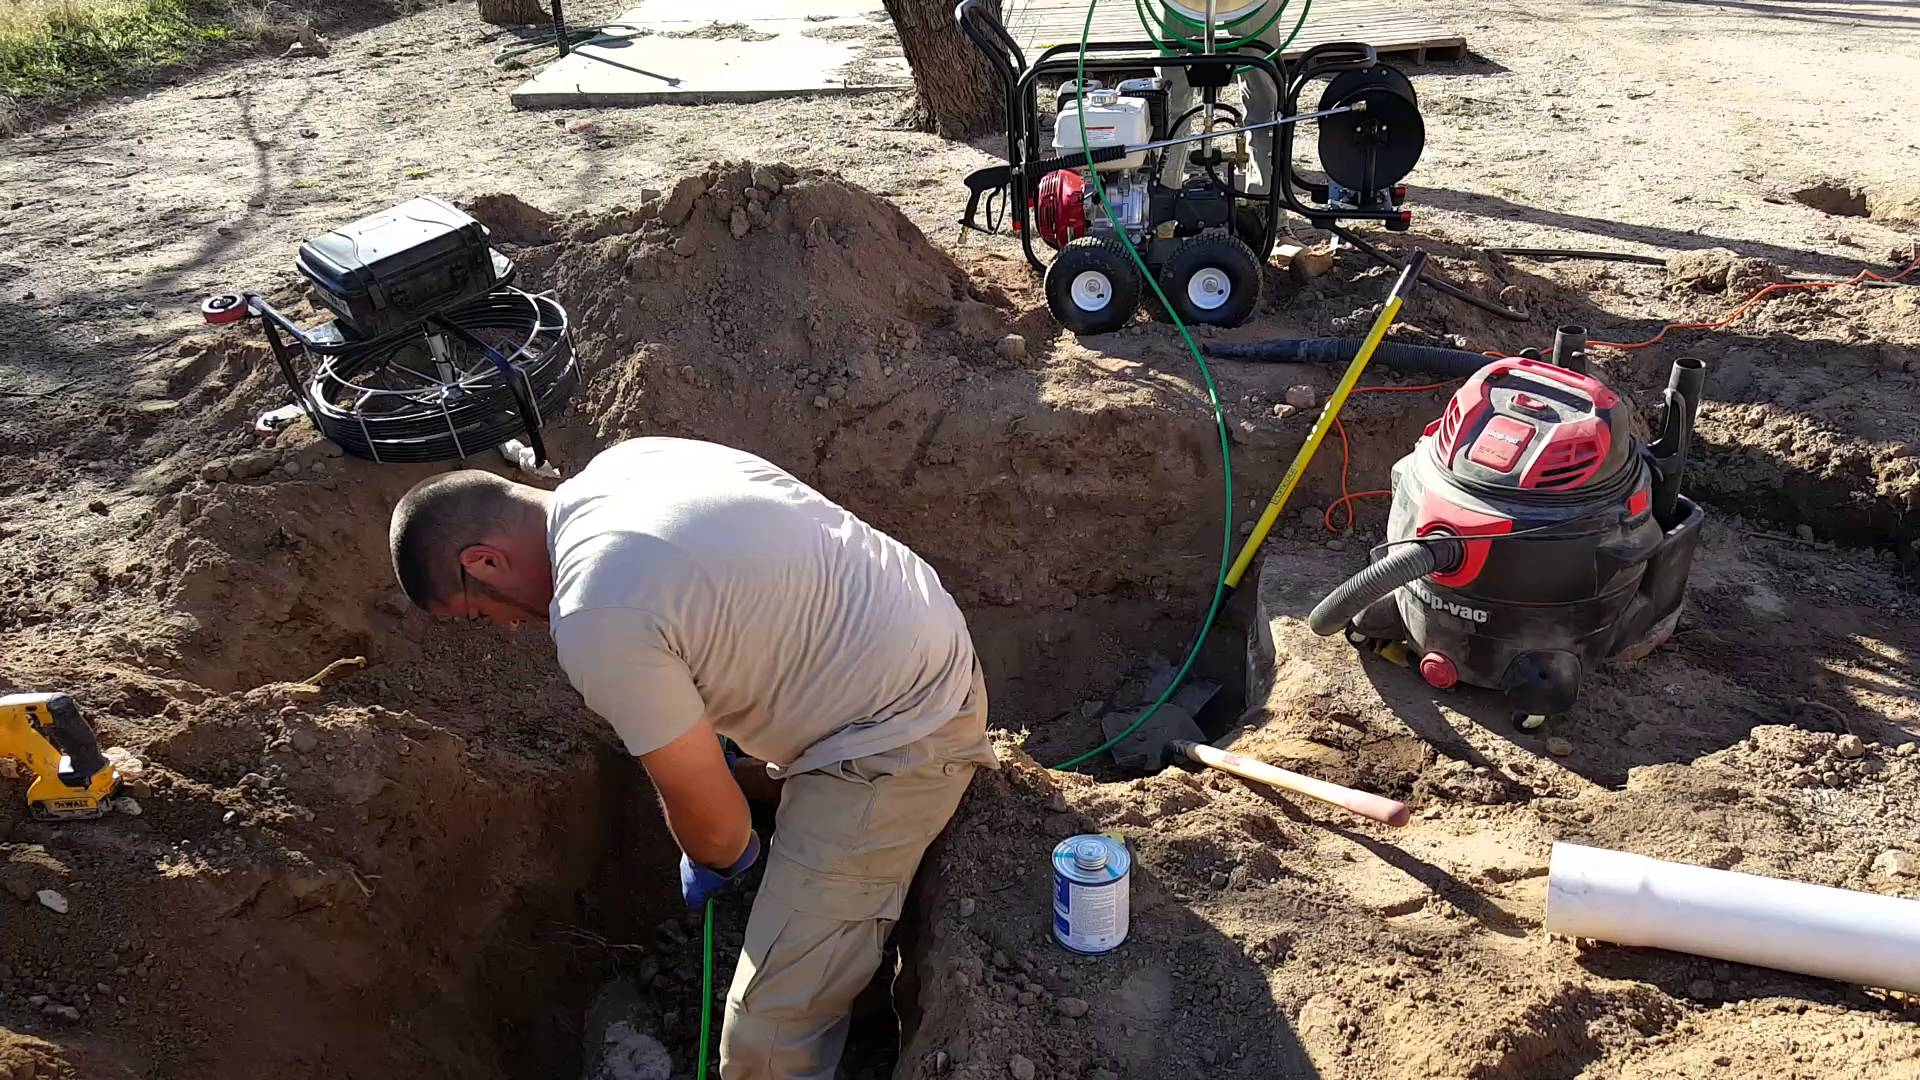 Aguilares-Laredo TX Septic Tank Pumping, Installation, & Repairs-We offer Septic Service & Repairs, Septic Tank Installations, Septic Tank Cleaning, Commercial, Septic System, Drain Cleaning, Line Snaking, Portable Toilet, Grease Trap Pumping & Cleaning, Septic Tank Pumping, Sewage Pump, Sewer Line Repair, Septic Tank Replacement, Septic Maintenance, Sewer Line Replacement, Porta Potty Rentals, and more.